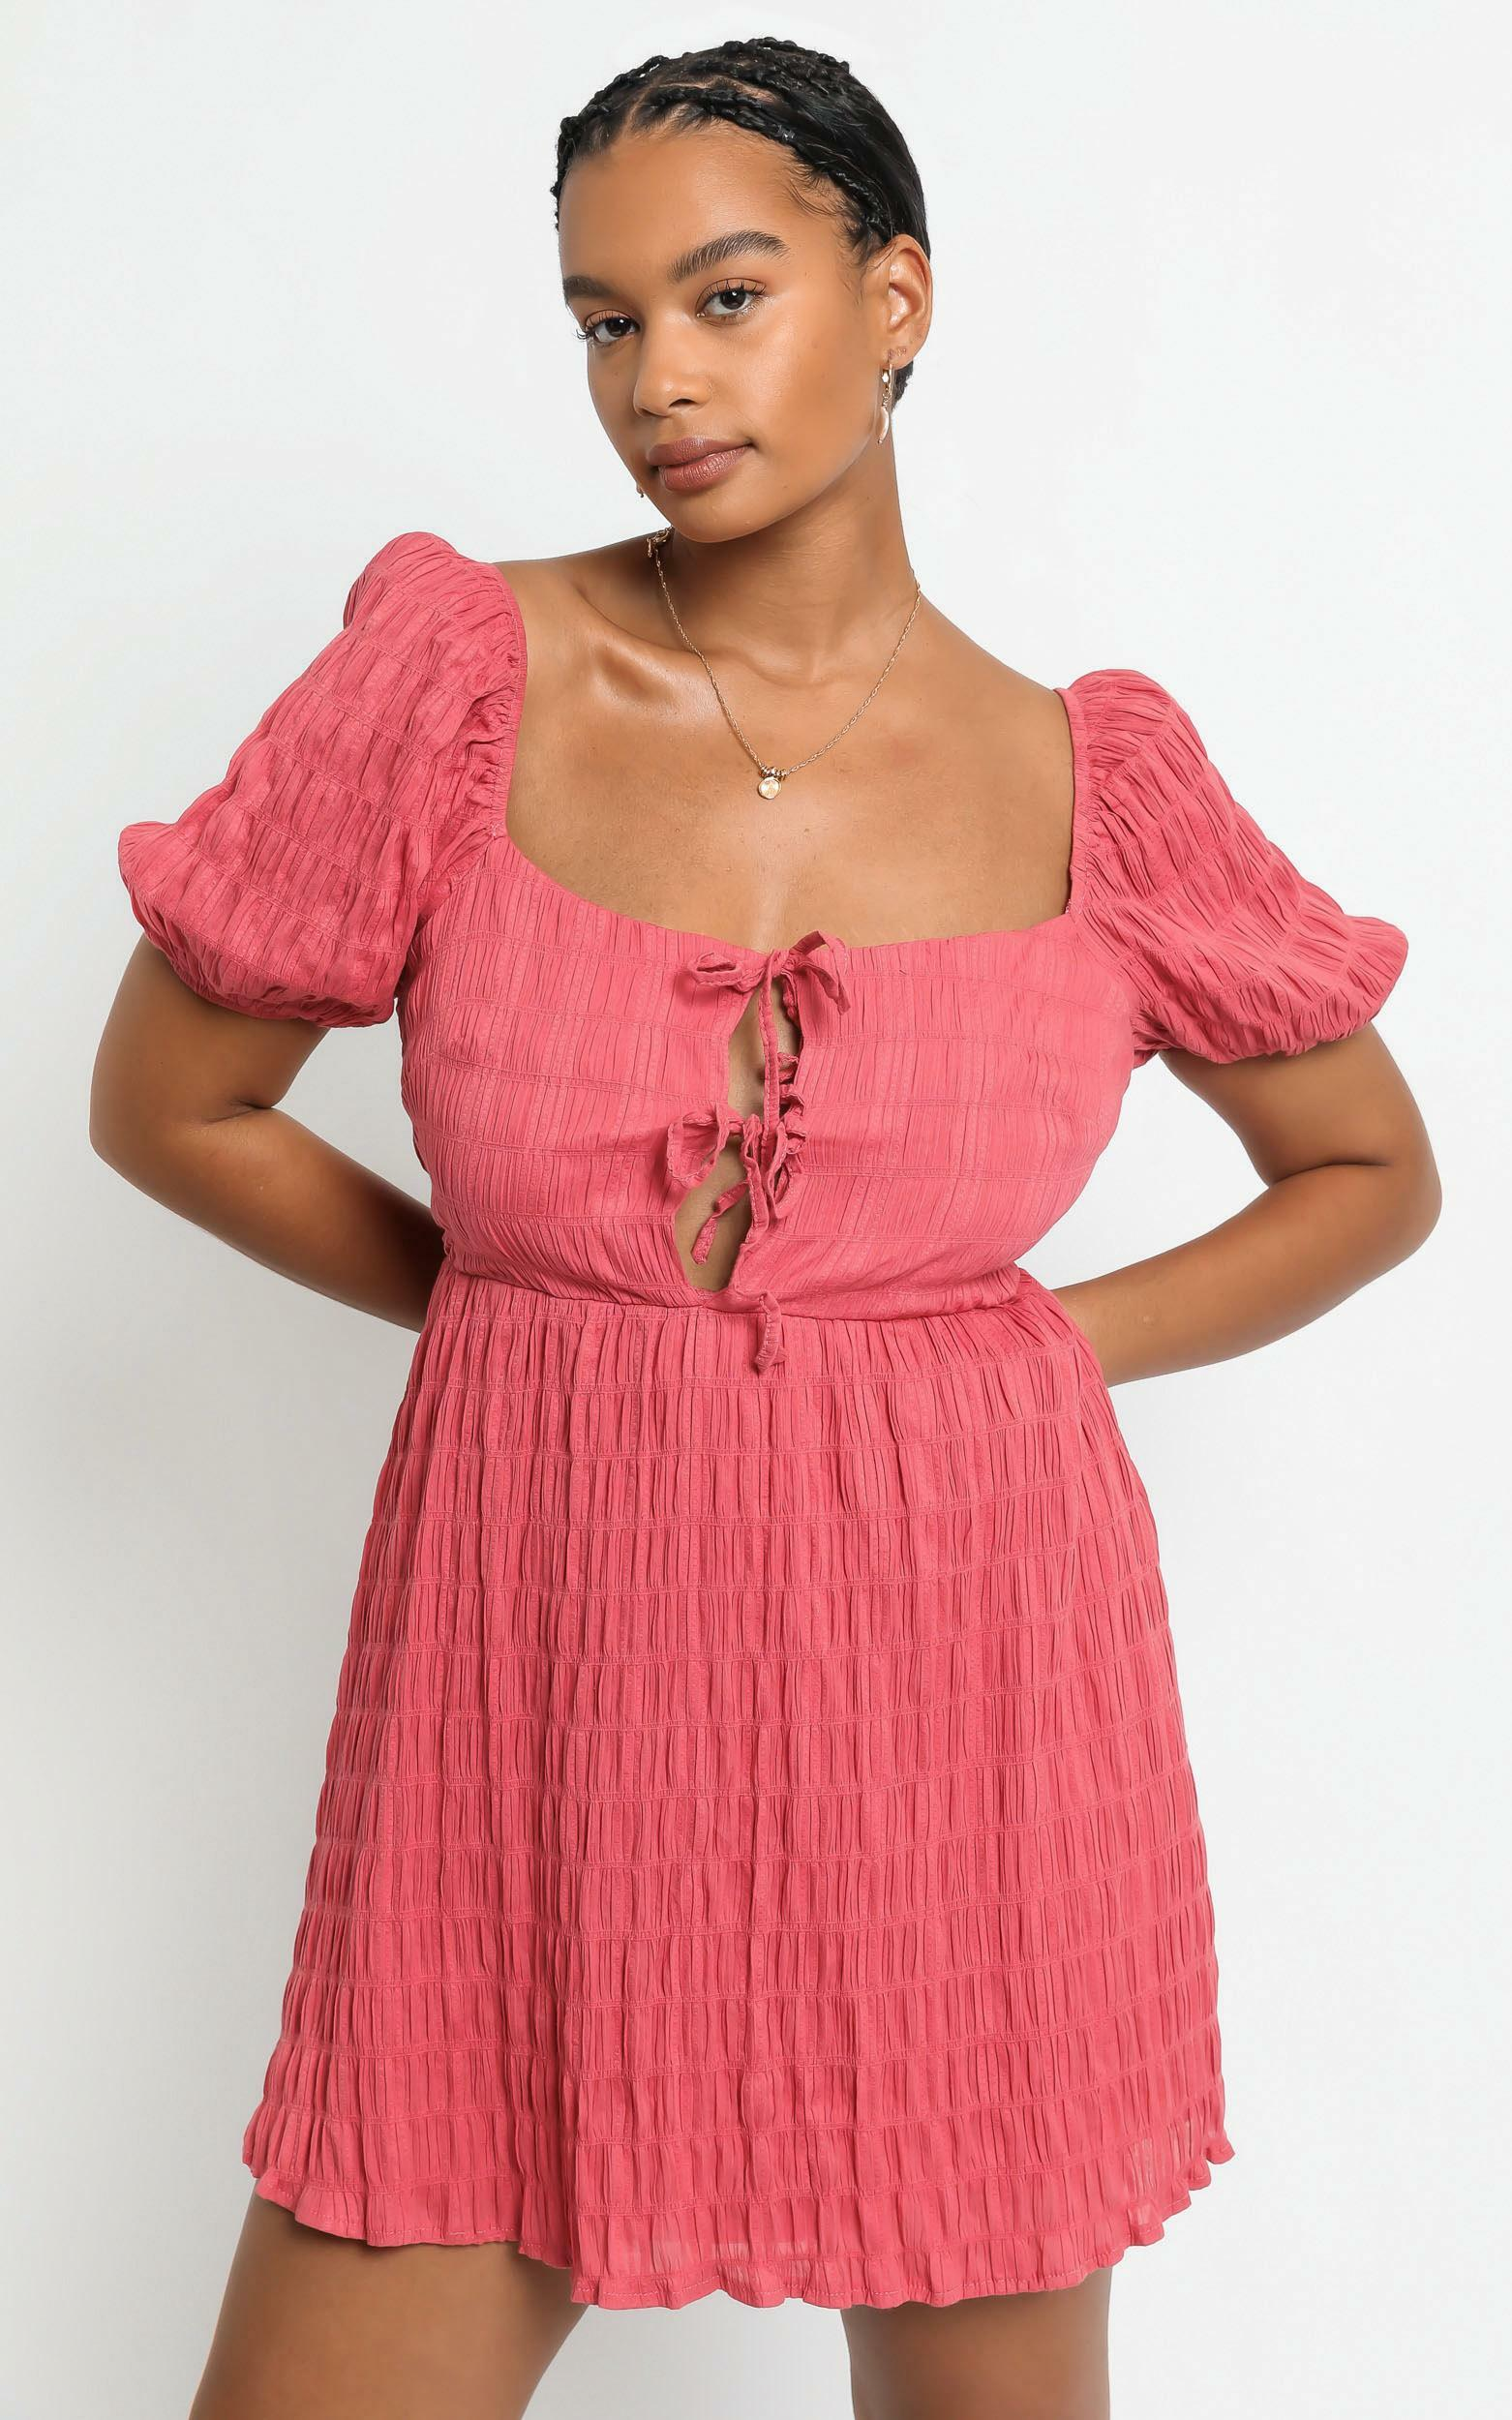 Mirabella Dress in  Watermelon - 6 (XS), RED1, hi-res image number null